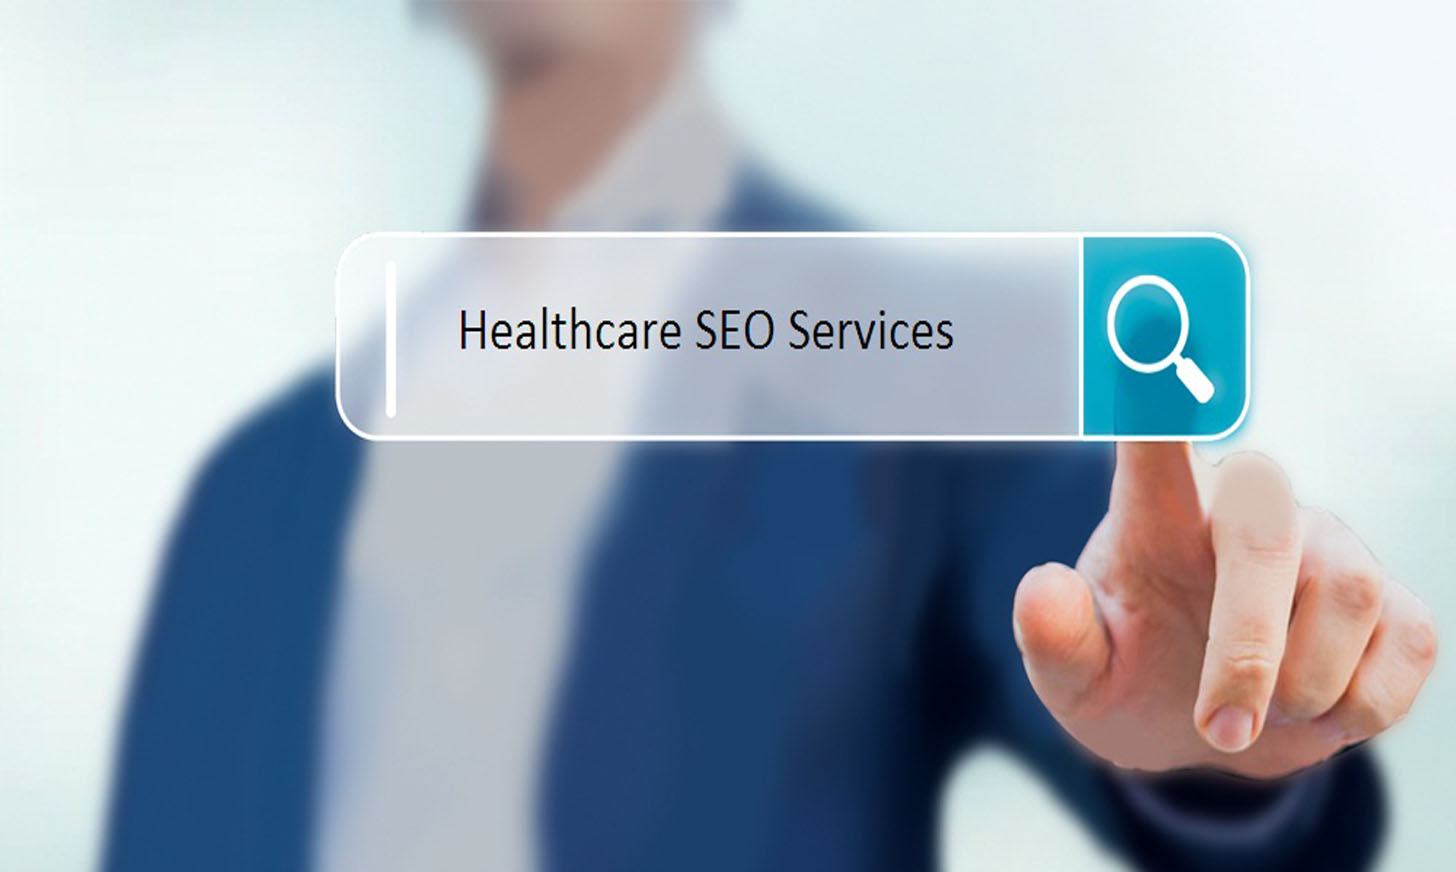 SEO Services for HealthCare